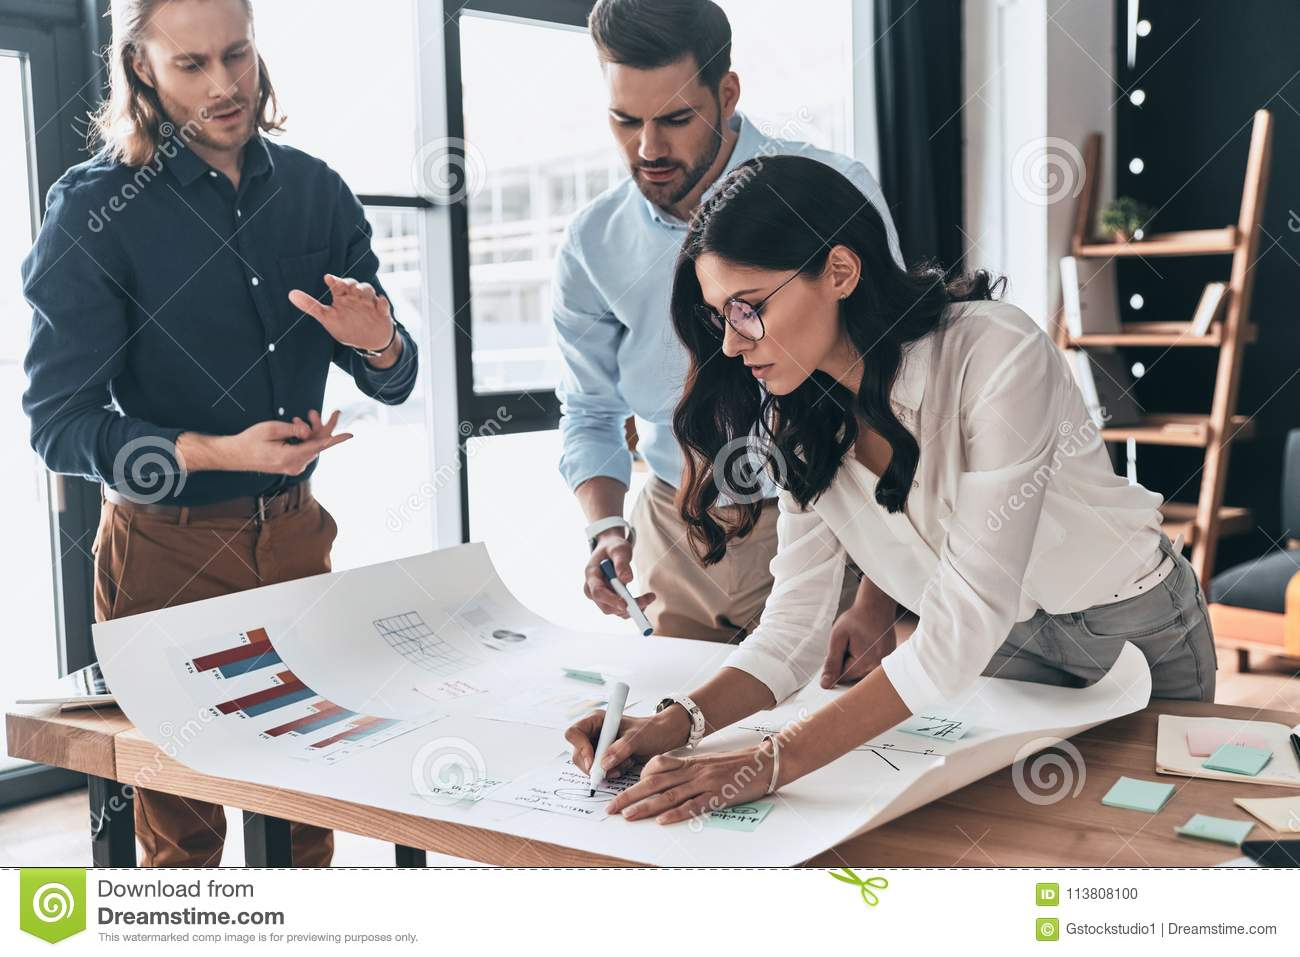 Planning new business strategy. Group of young confident business people discussing something while woman writing on blueprint in